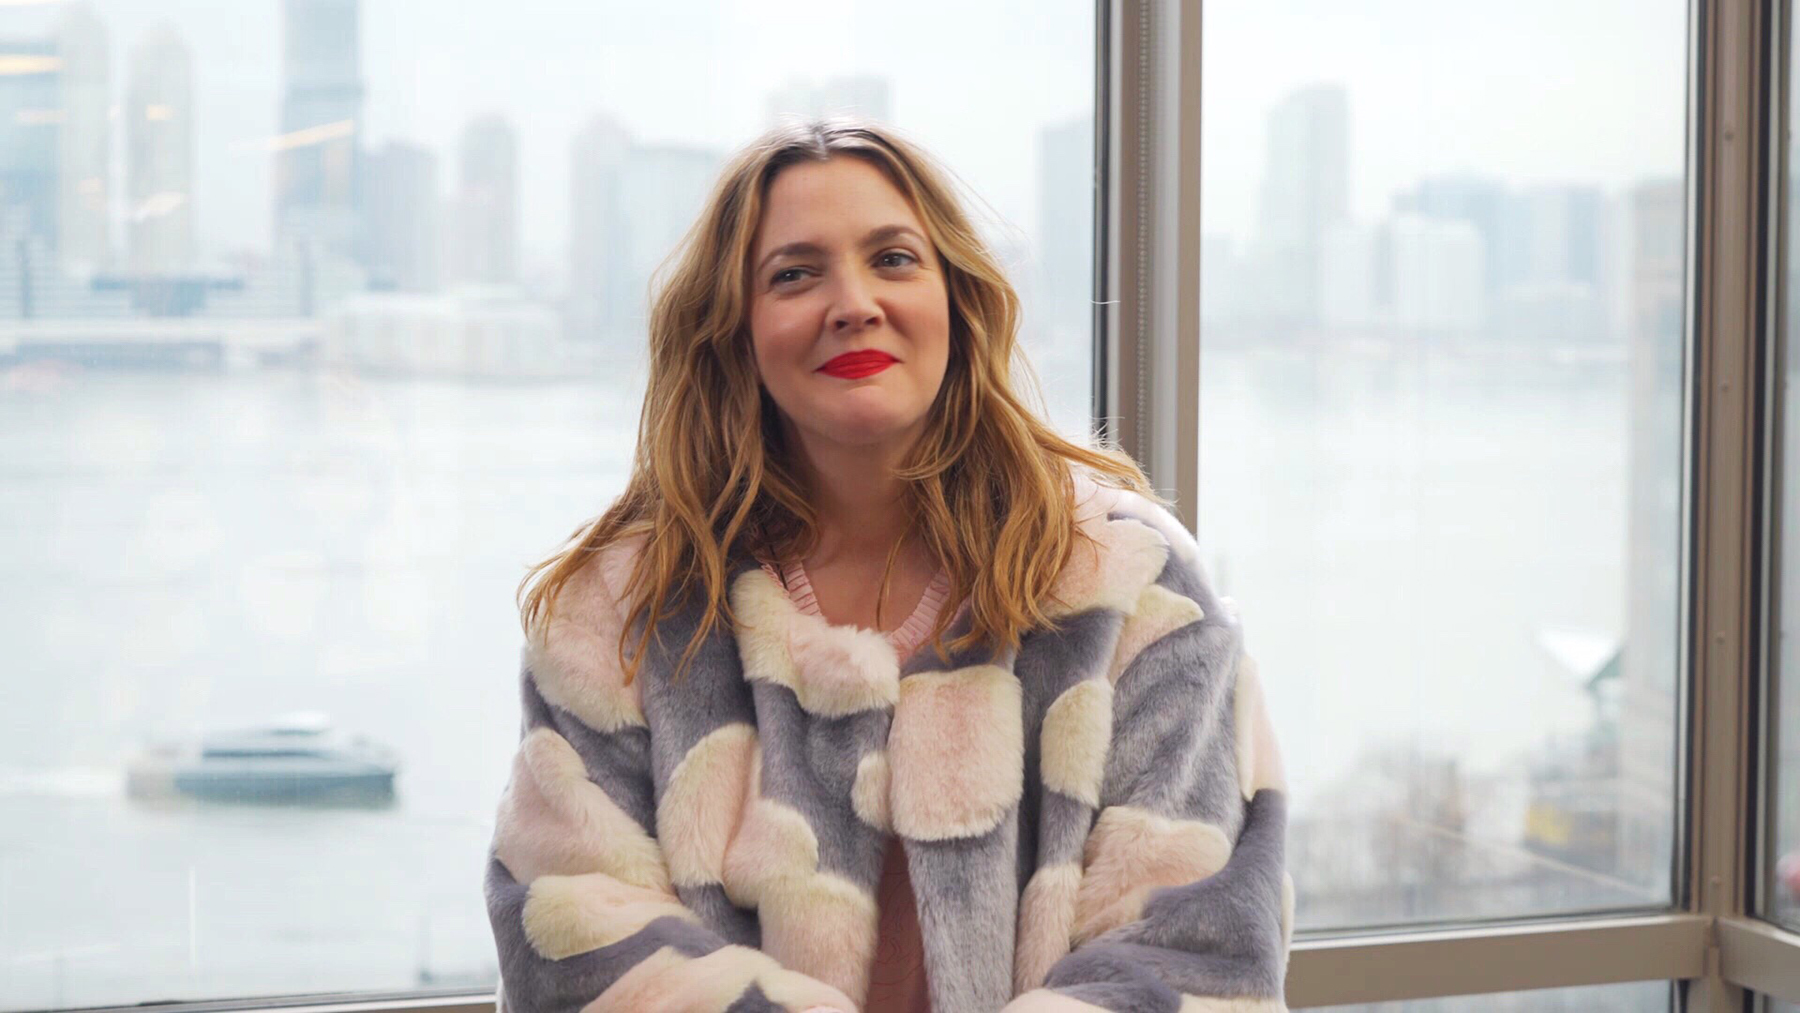 Drew Barrymore on beauty